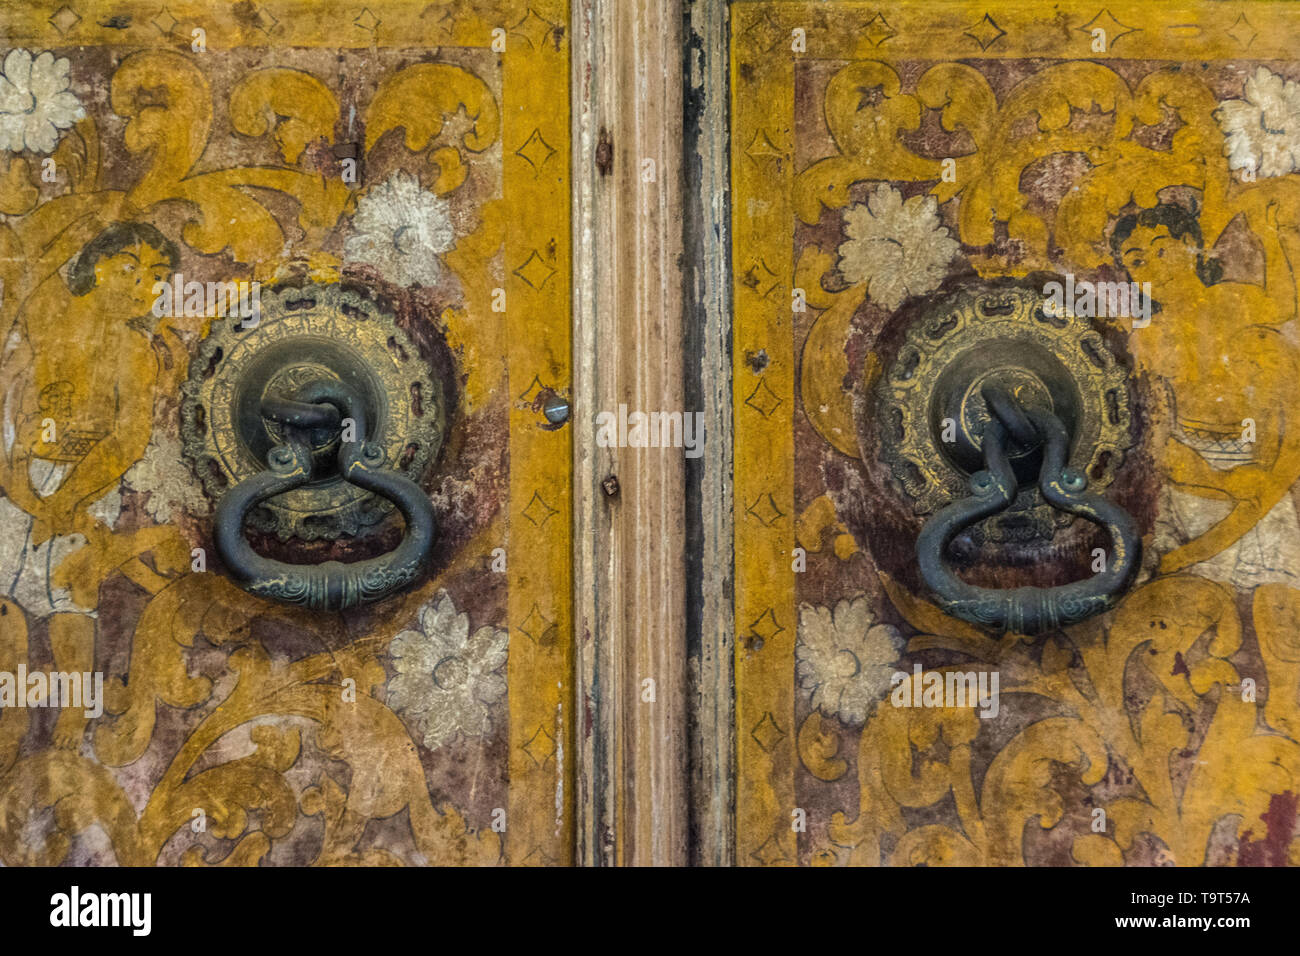 Sri Lanka trip, day 7: a detail of one of the painted doors at the